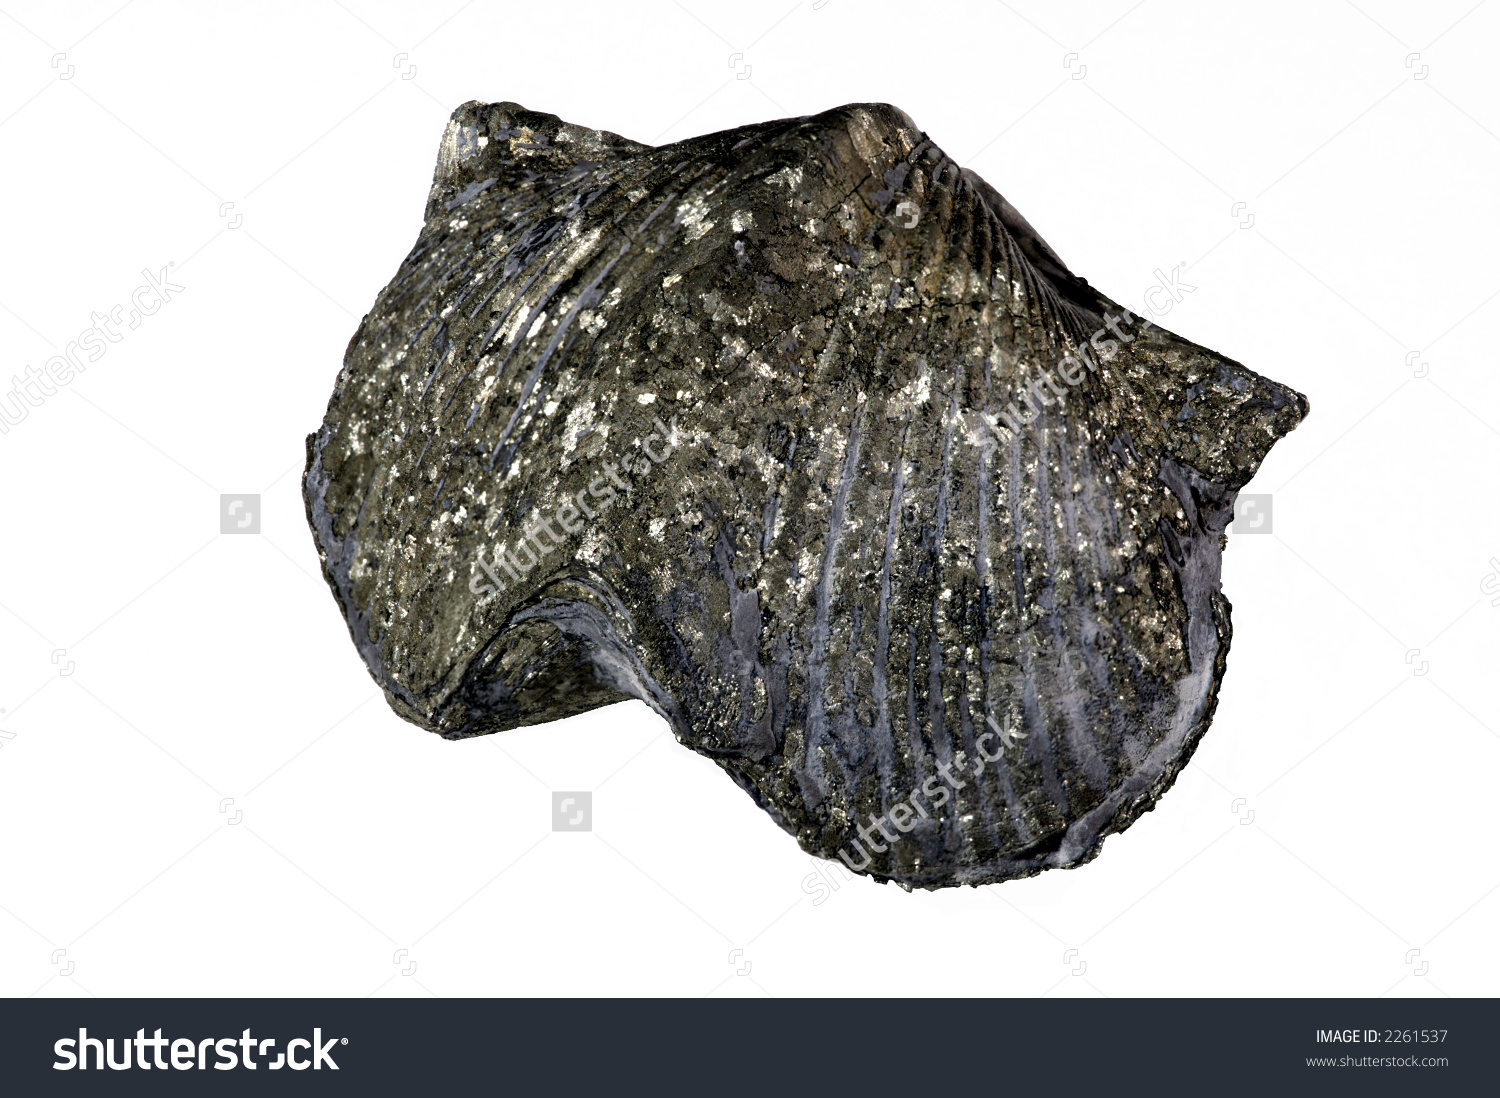 Bivalve Fossilized In Pyrite. Silica Formation, Lower Devonian.